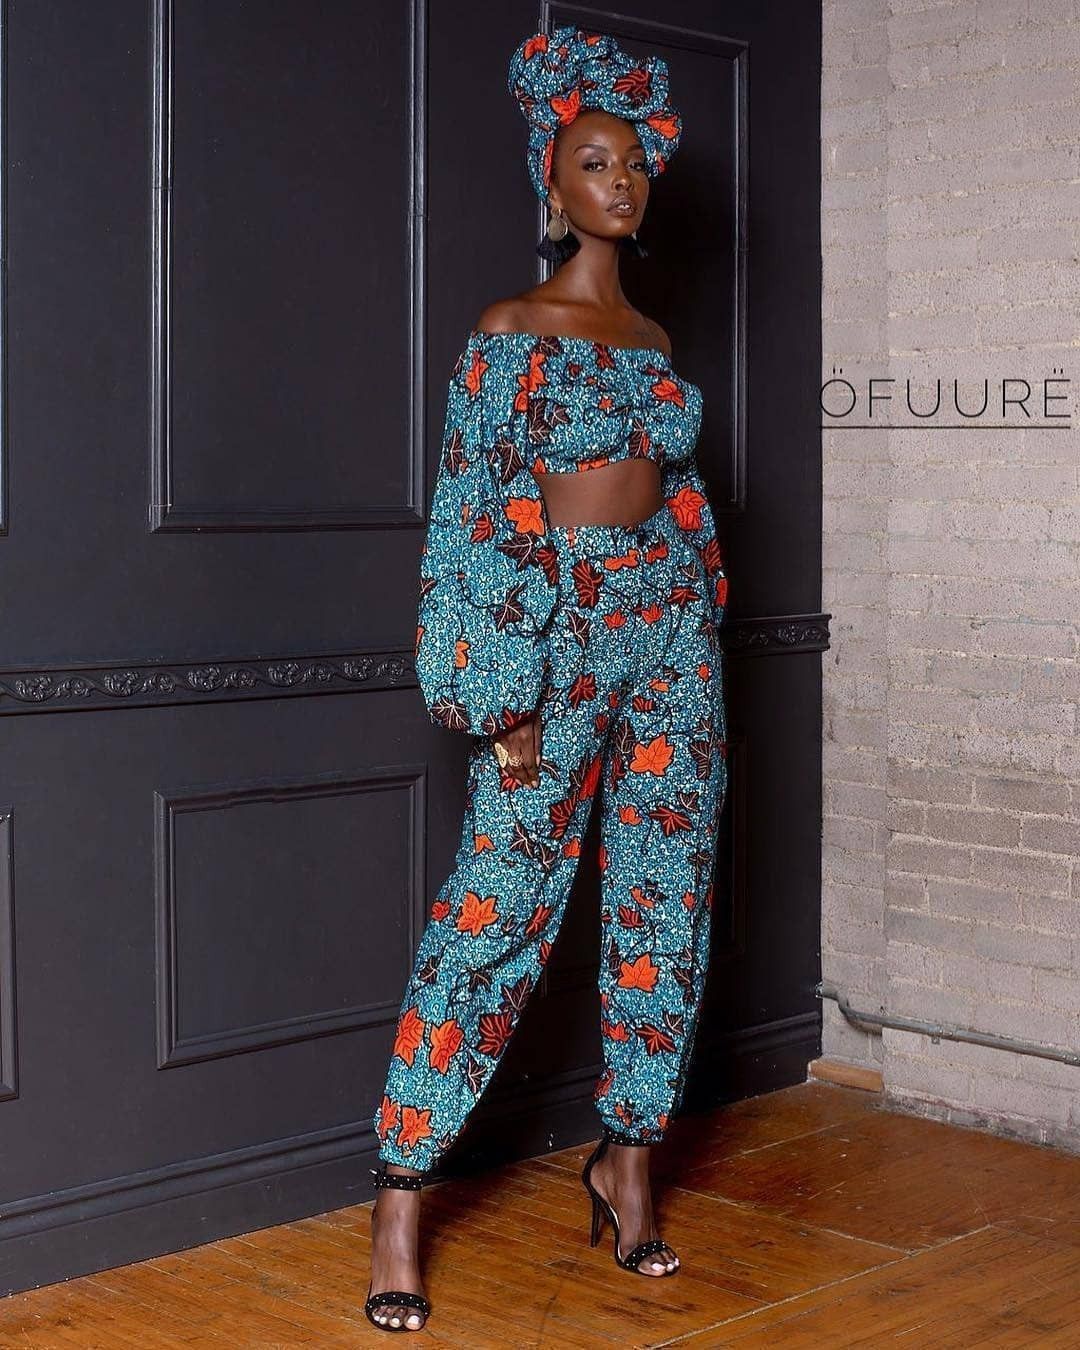 Two piece Ankara Fashion styles for Spring  #africanfashion Sexy African Print Fashion outfits for women #wedding #Africanprint #braids #hairstyles #spring #fashion #makeup #Womenswear #womensfashion #gowns #toghu #toghuprint #ankaramode